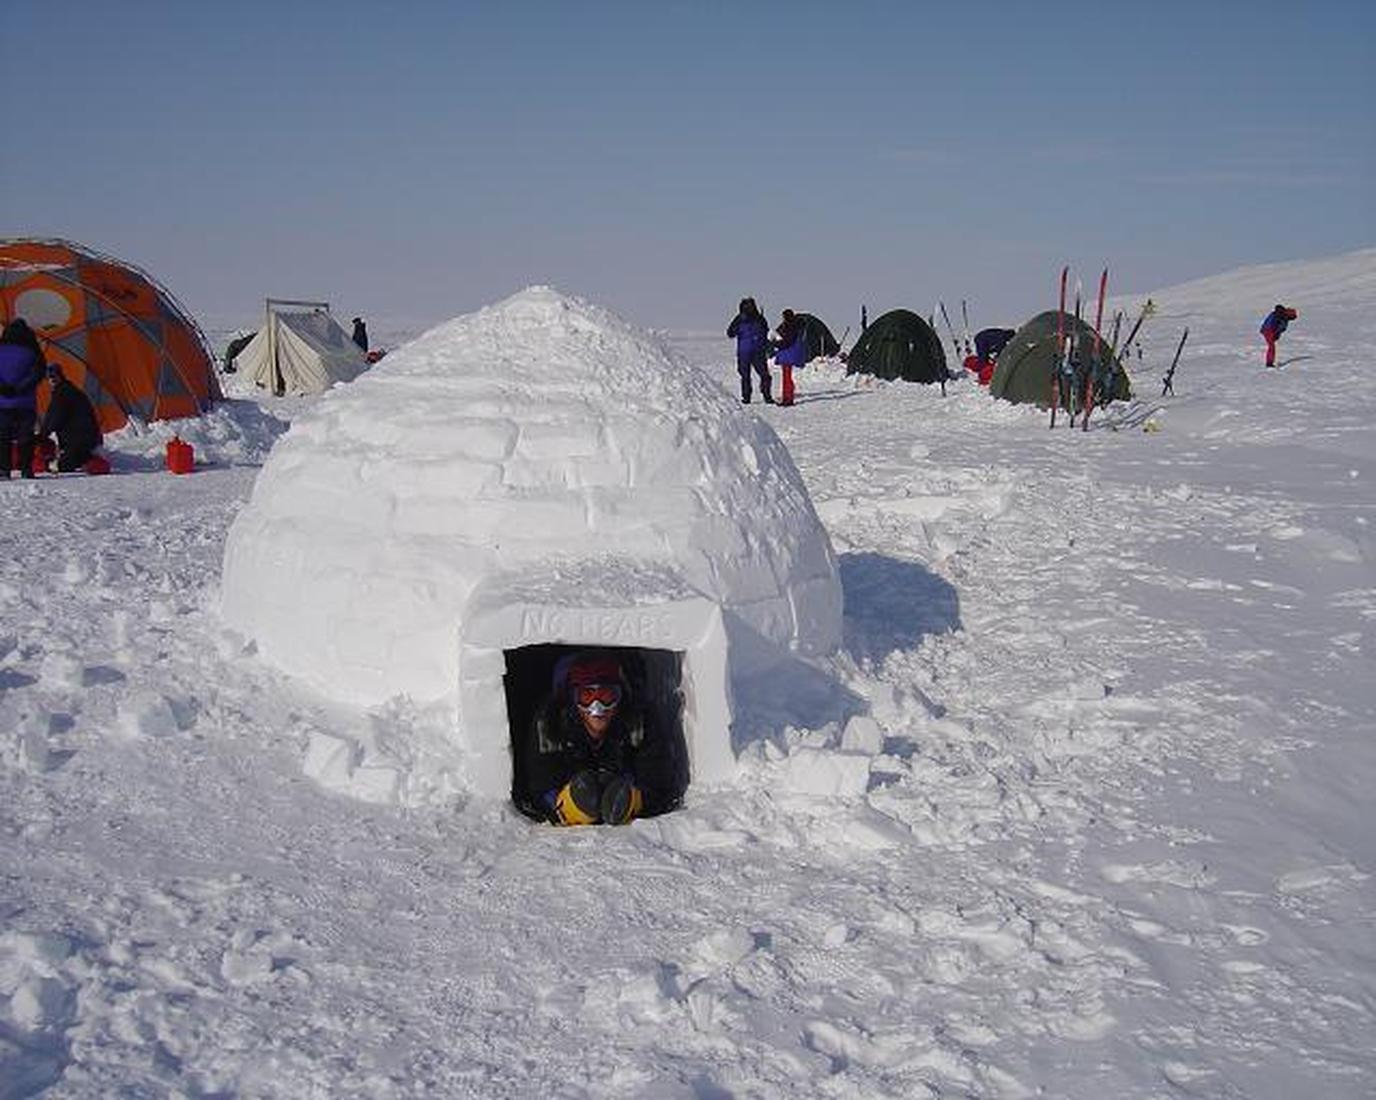 Take a tour of historic Inuit sites and stay in an igloo with your dog on Baffin Safari tours.